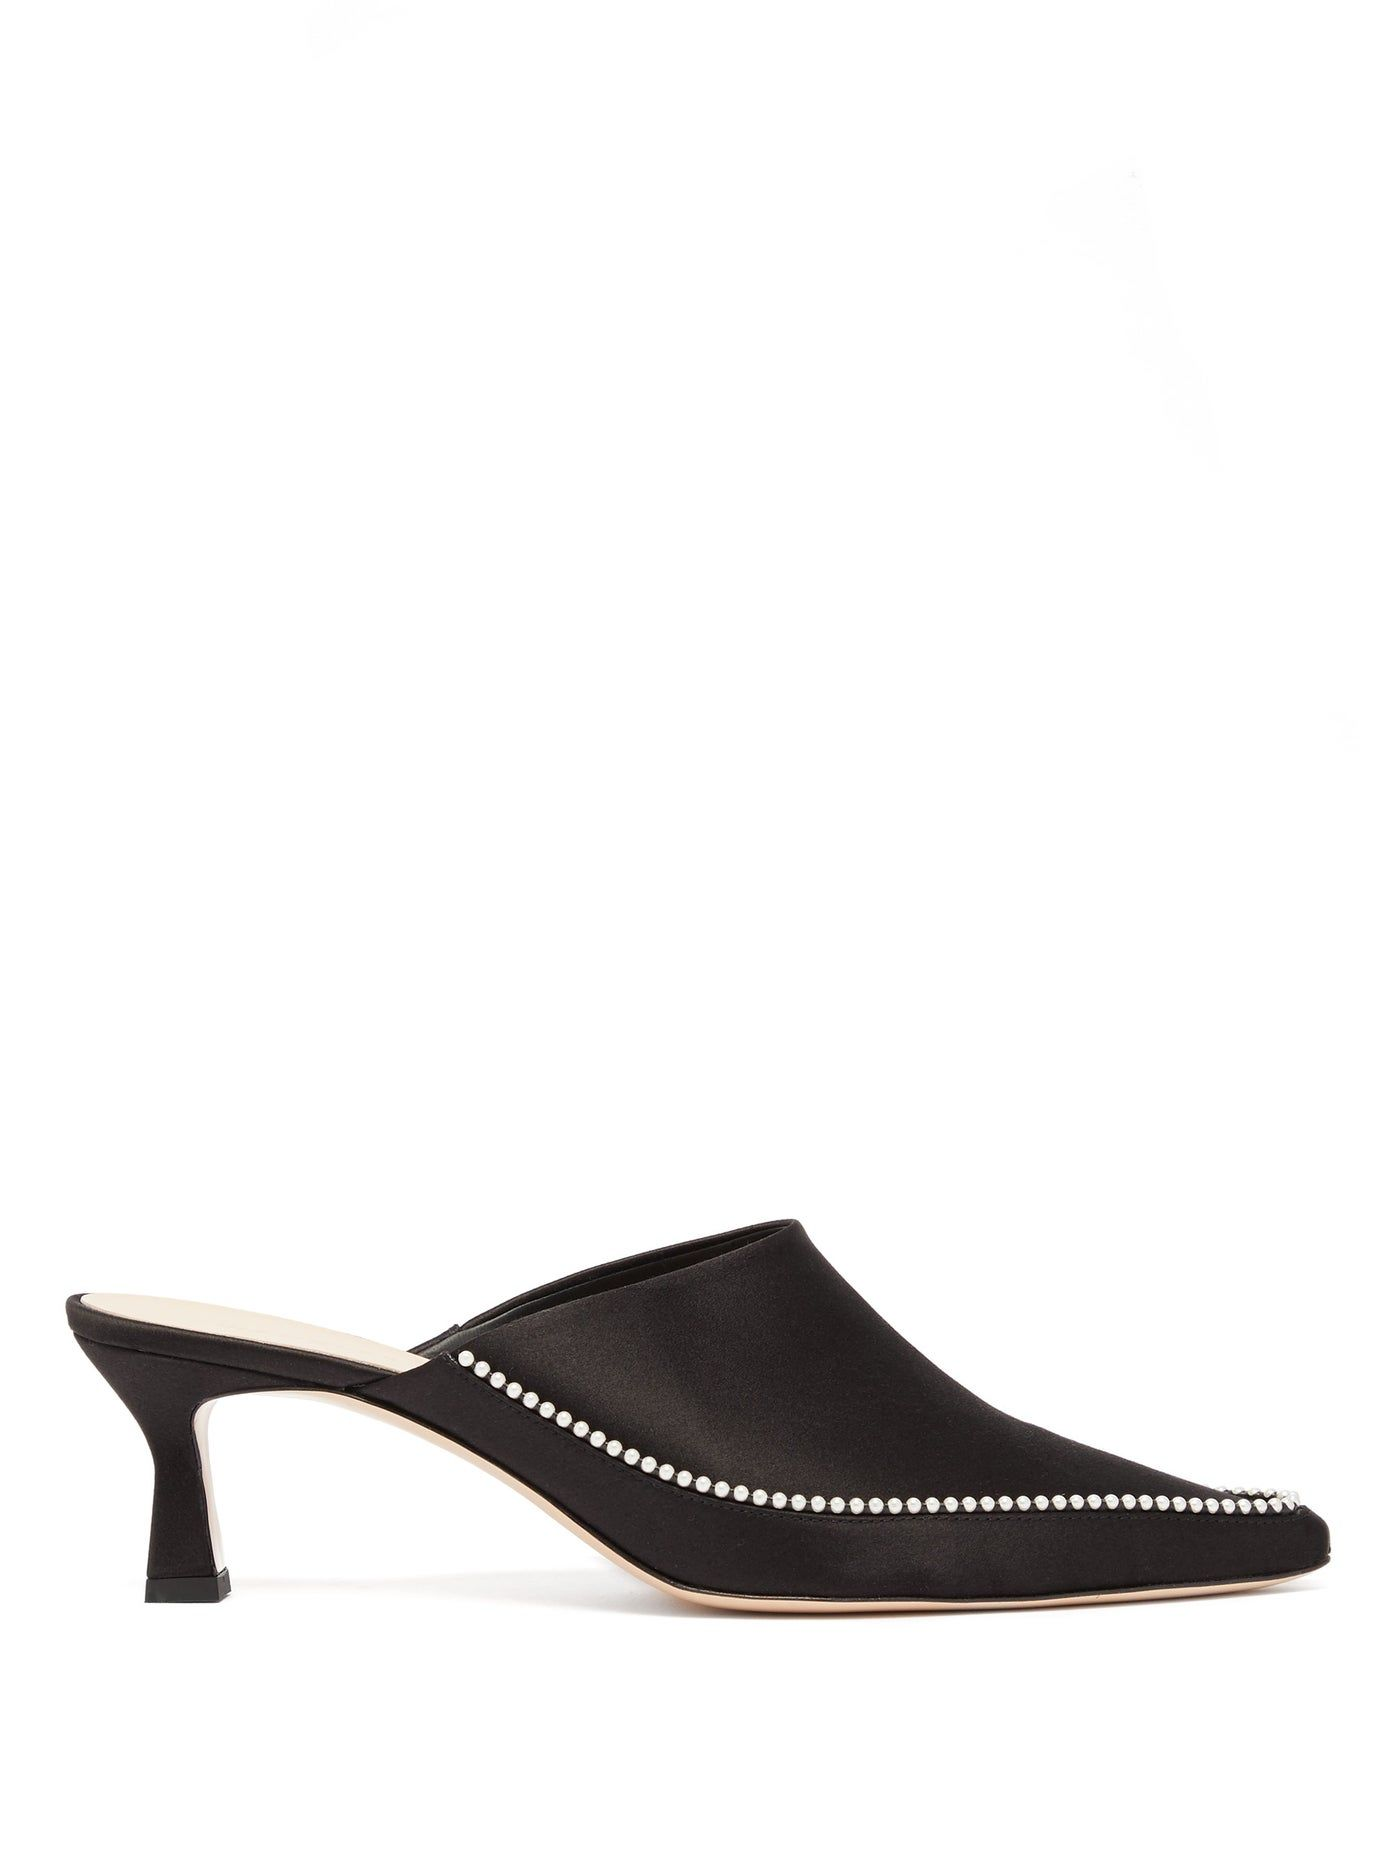 Bente Pearl Embellished Point Toe Satin Mules Wandler Matchesfashion Us In 2020 Evening Shoes Kitten Heels Black Leather